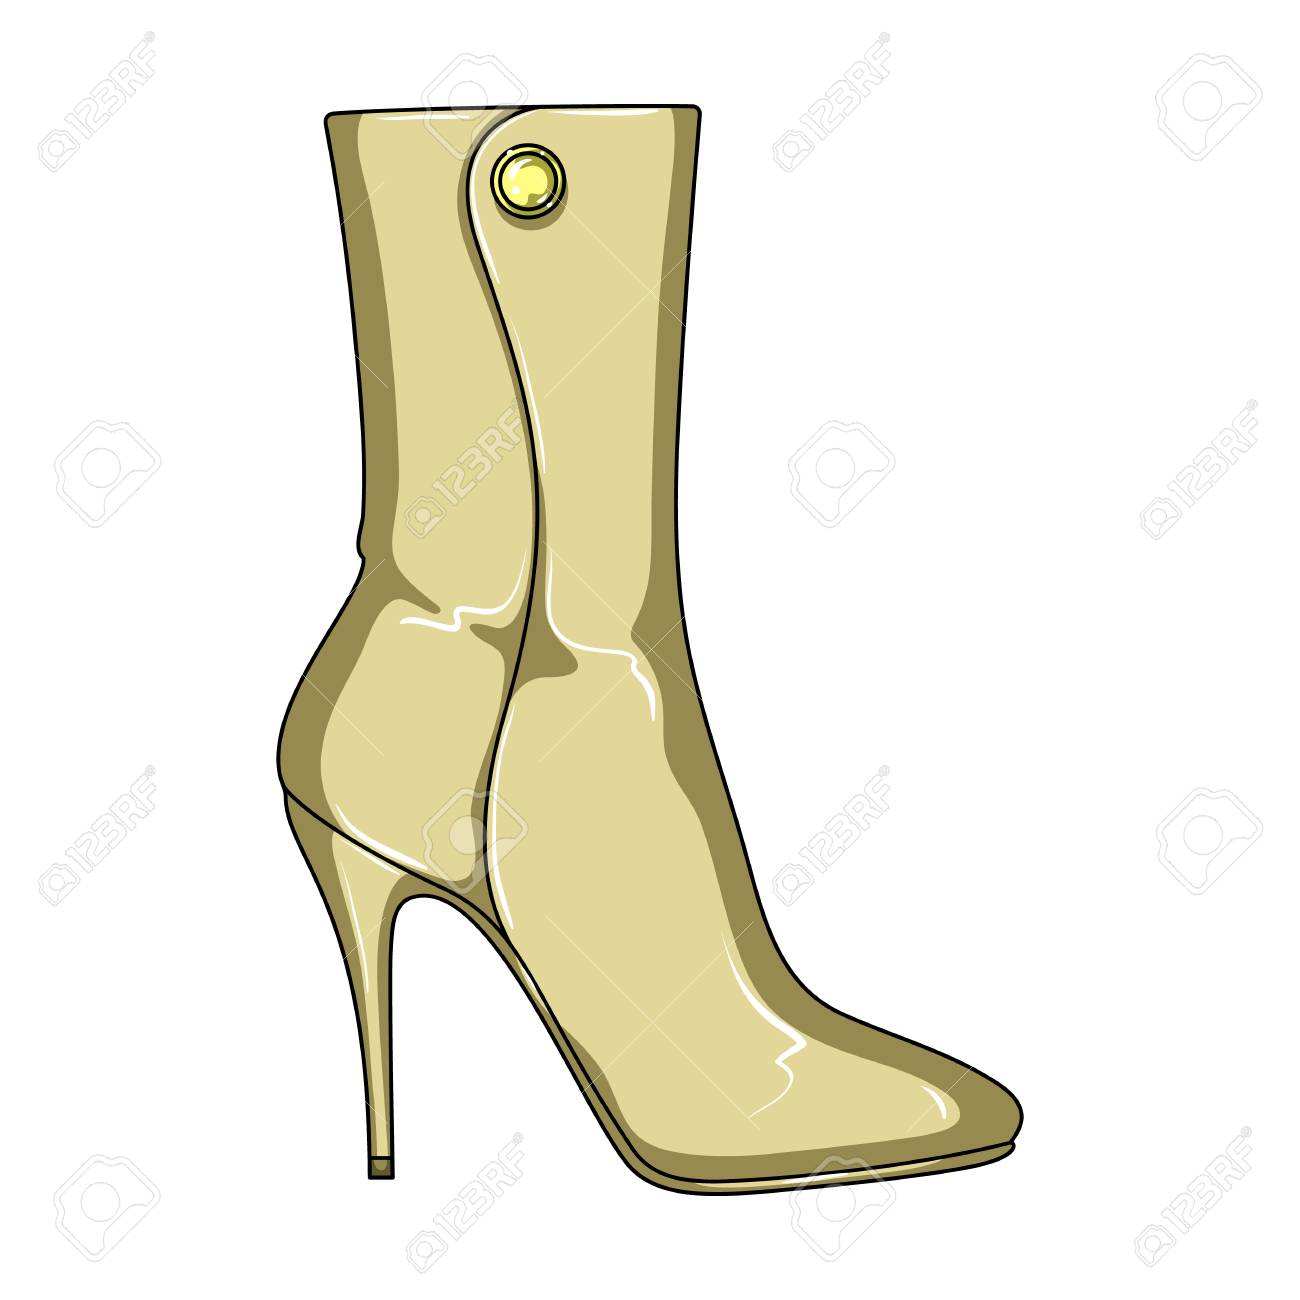 0e3239621dc Demi tall womens boots high heel.Different shoes single icon in cartoon  style vector symbol